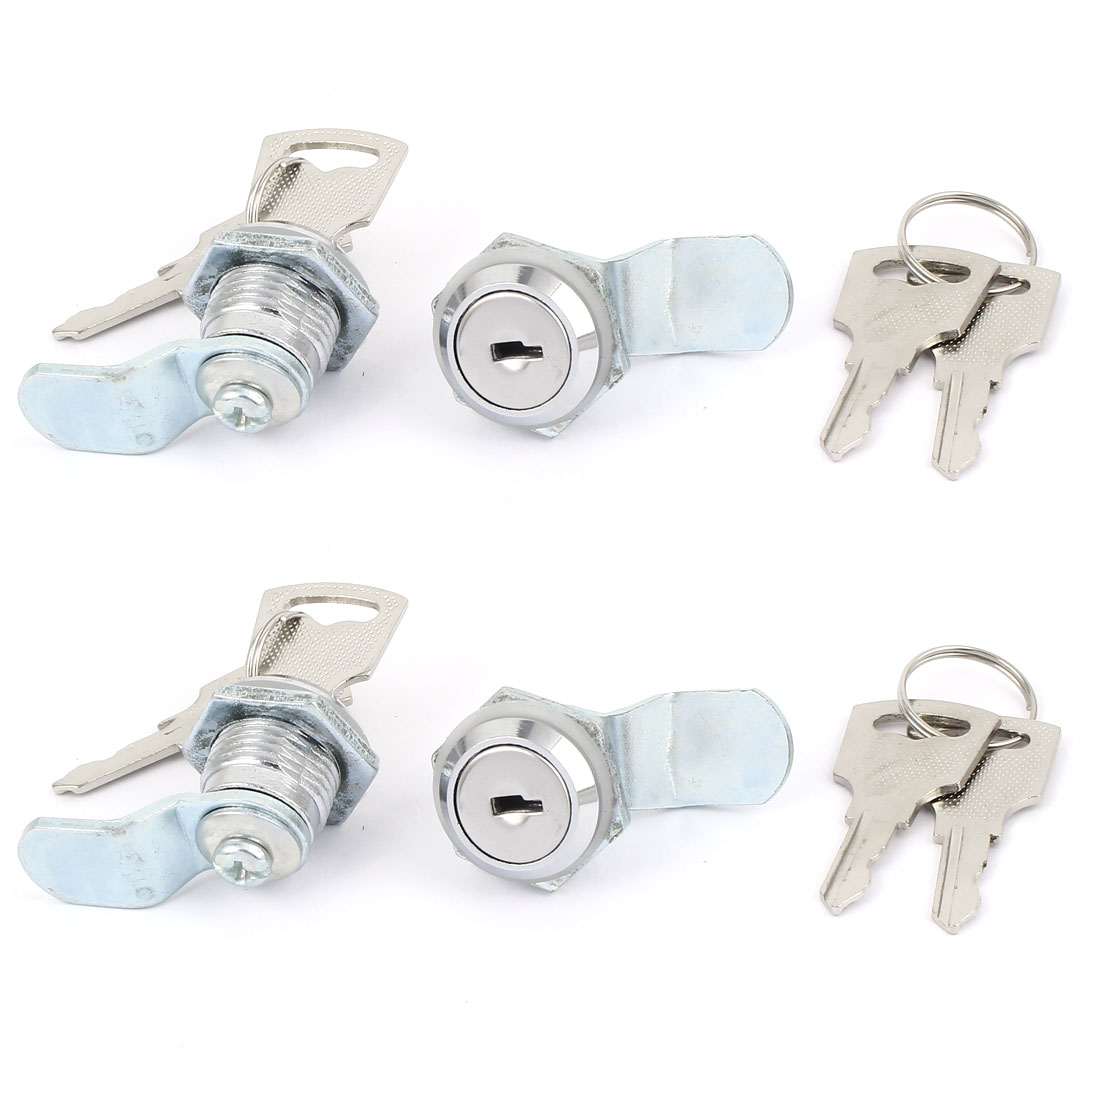 4Pcs Cabinet Cross Shaped Metal Core Cam Door Lock with Keys